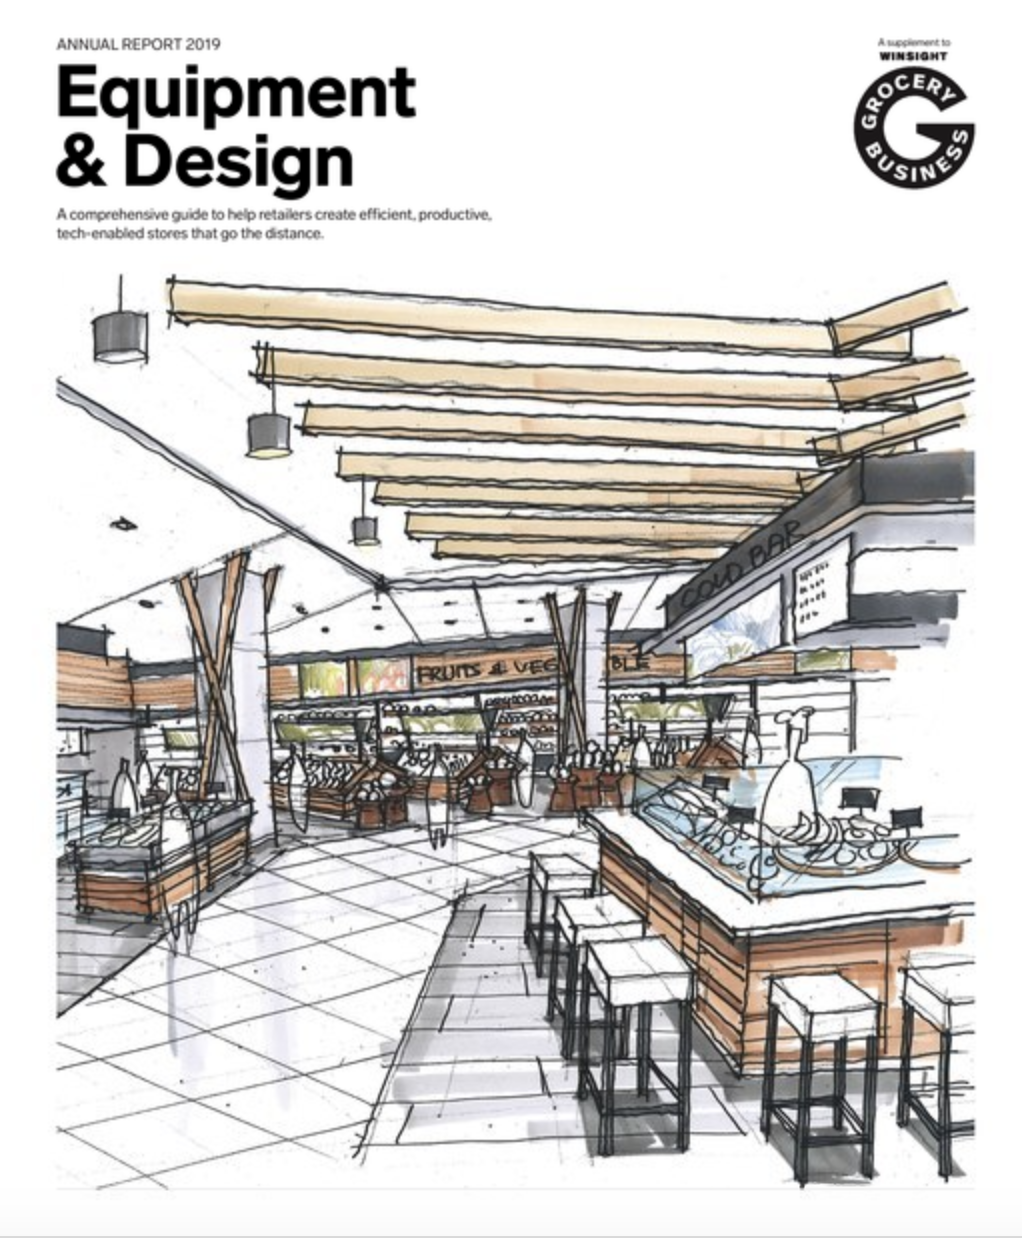 Winsight Grocery Business Magazine 2019 Annual Report: Equipment and Design Issue